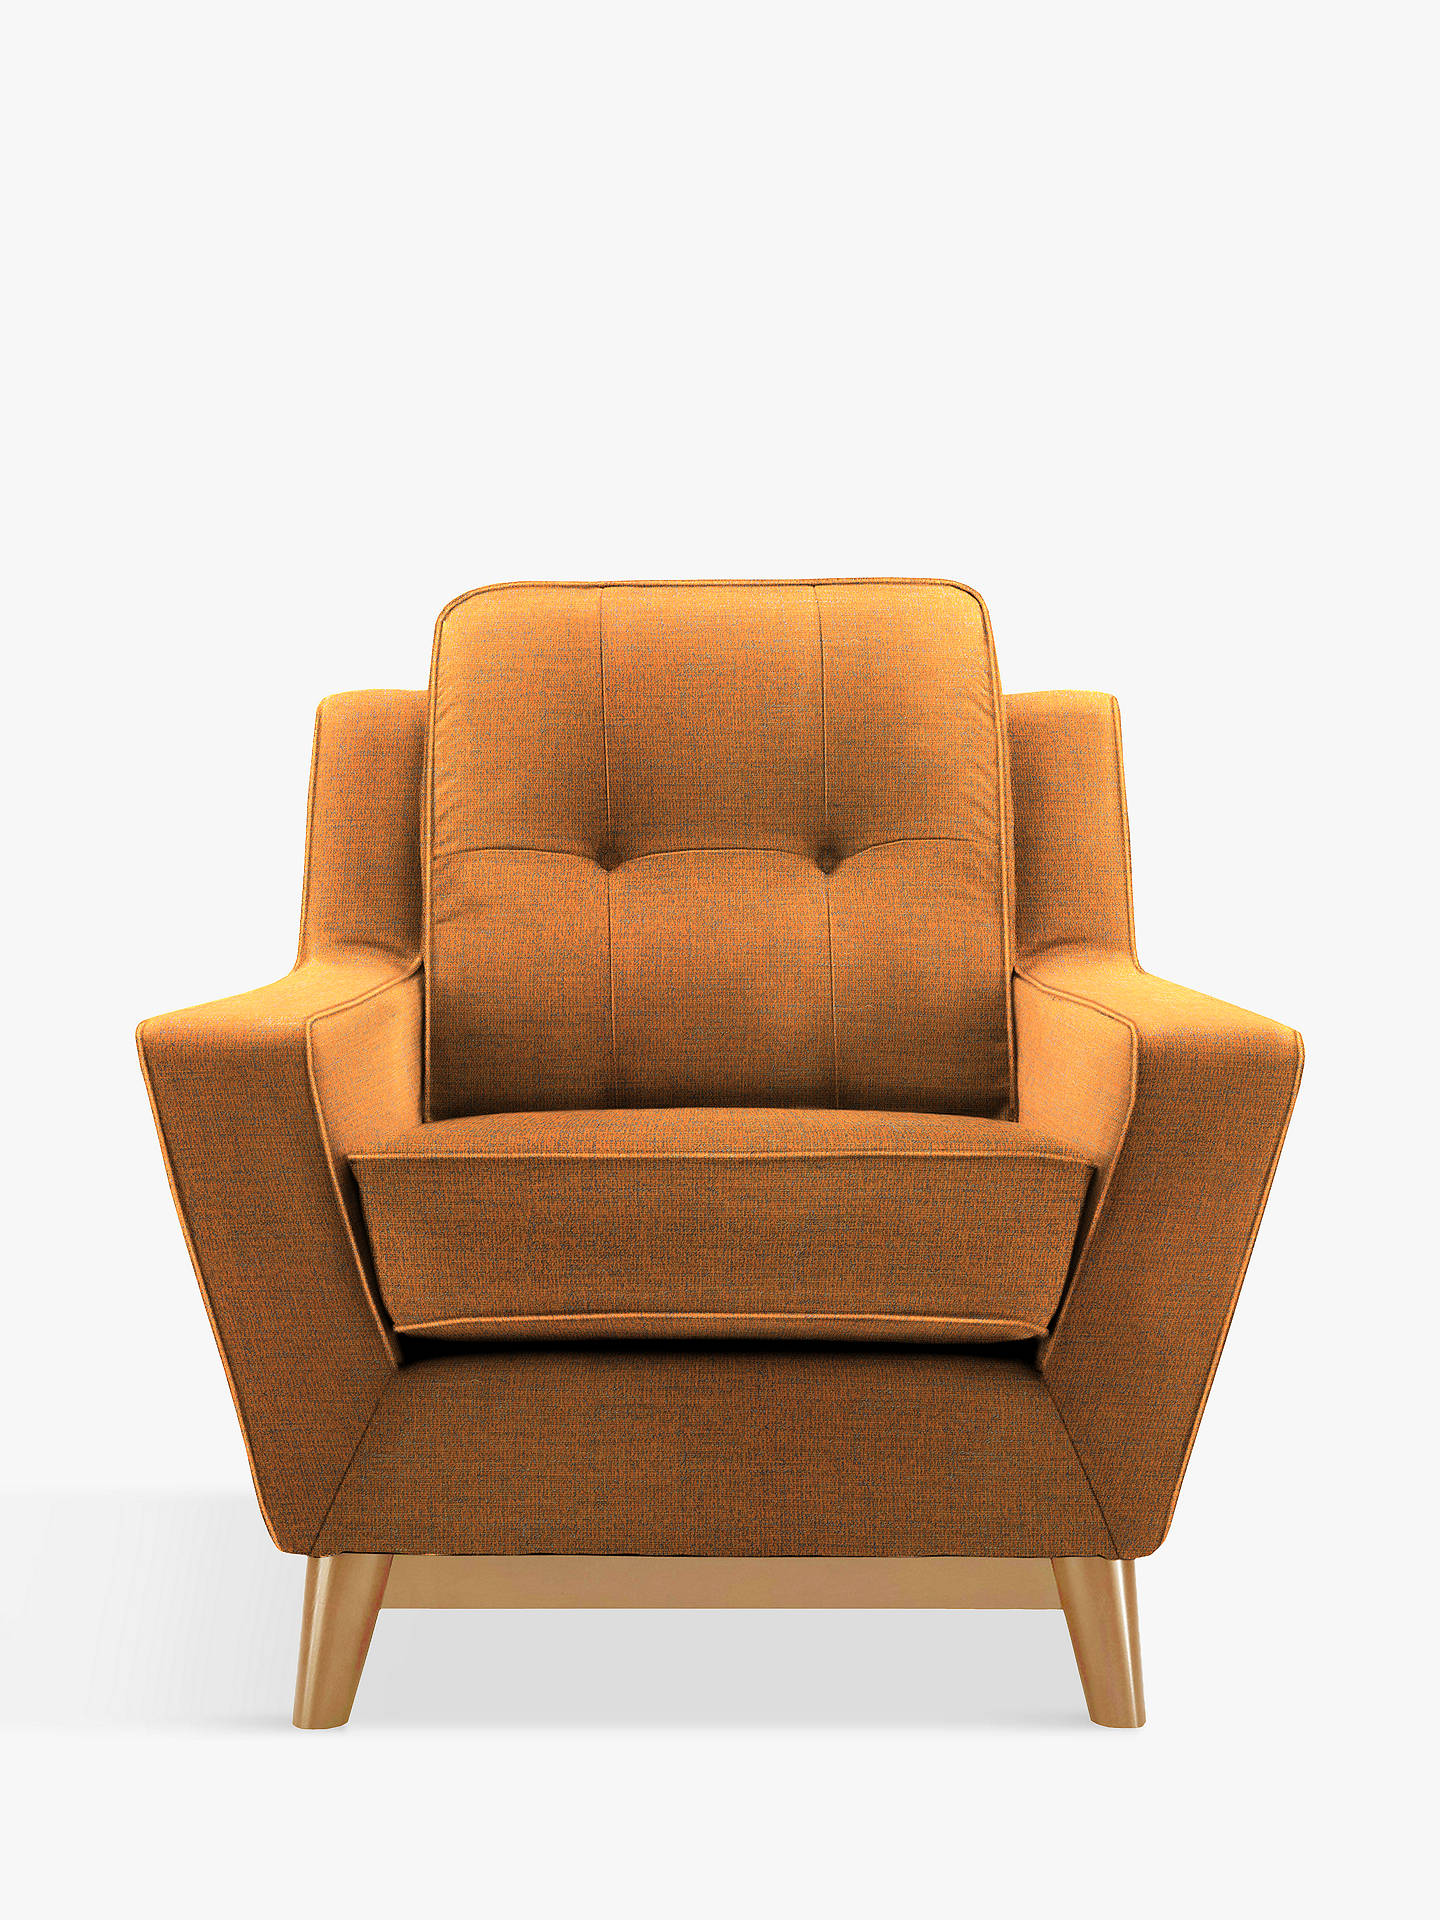 G Plan Vintage The Fifty Three Armchair, Flurry Tangerine